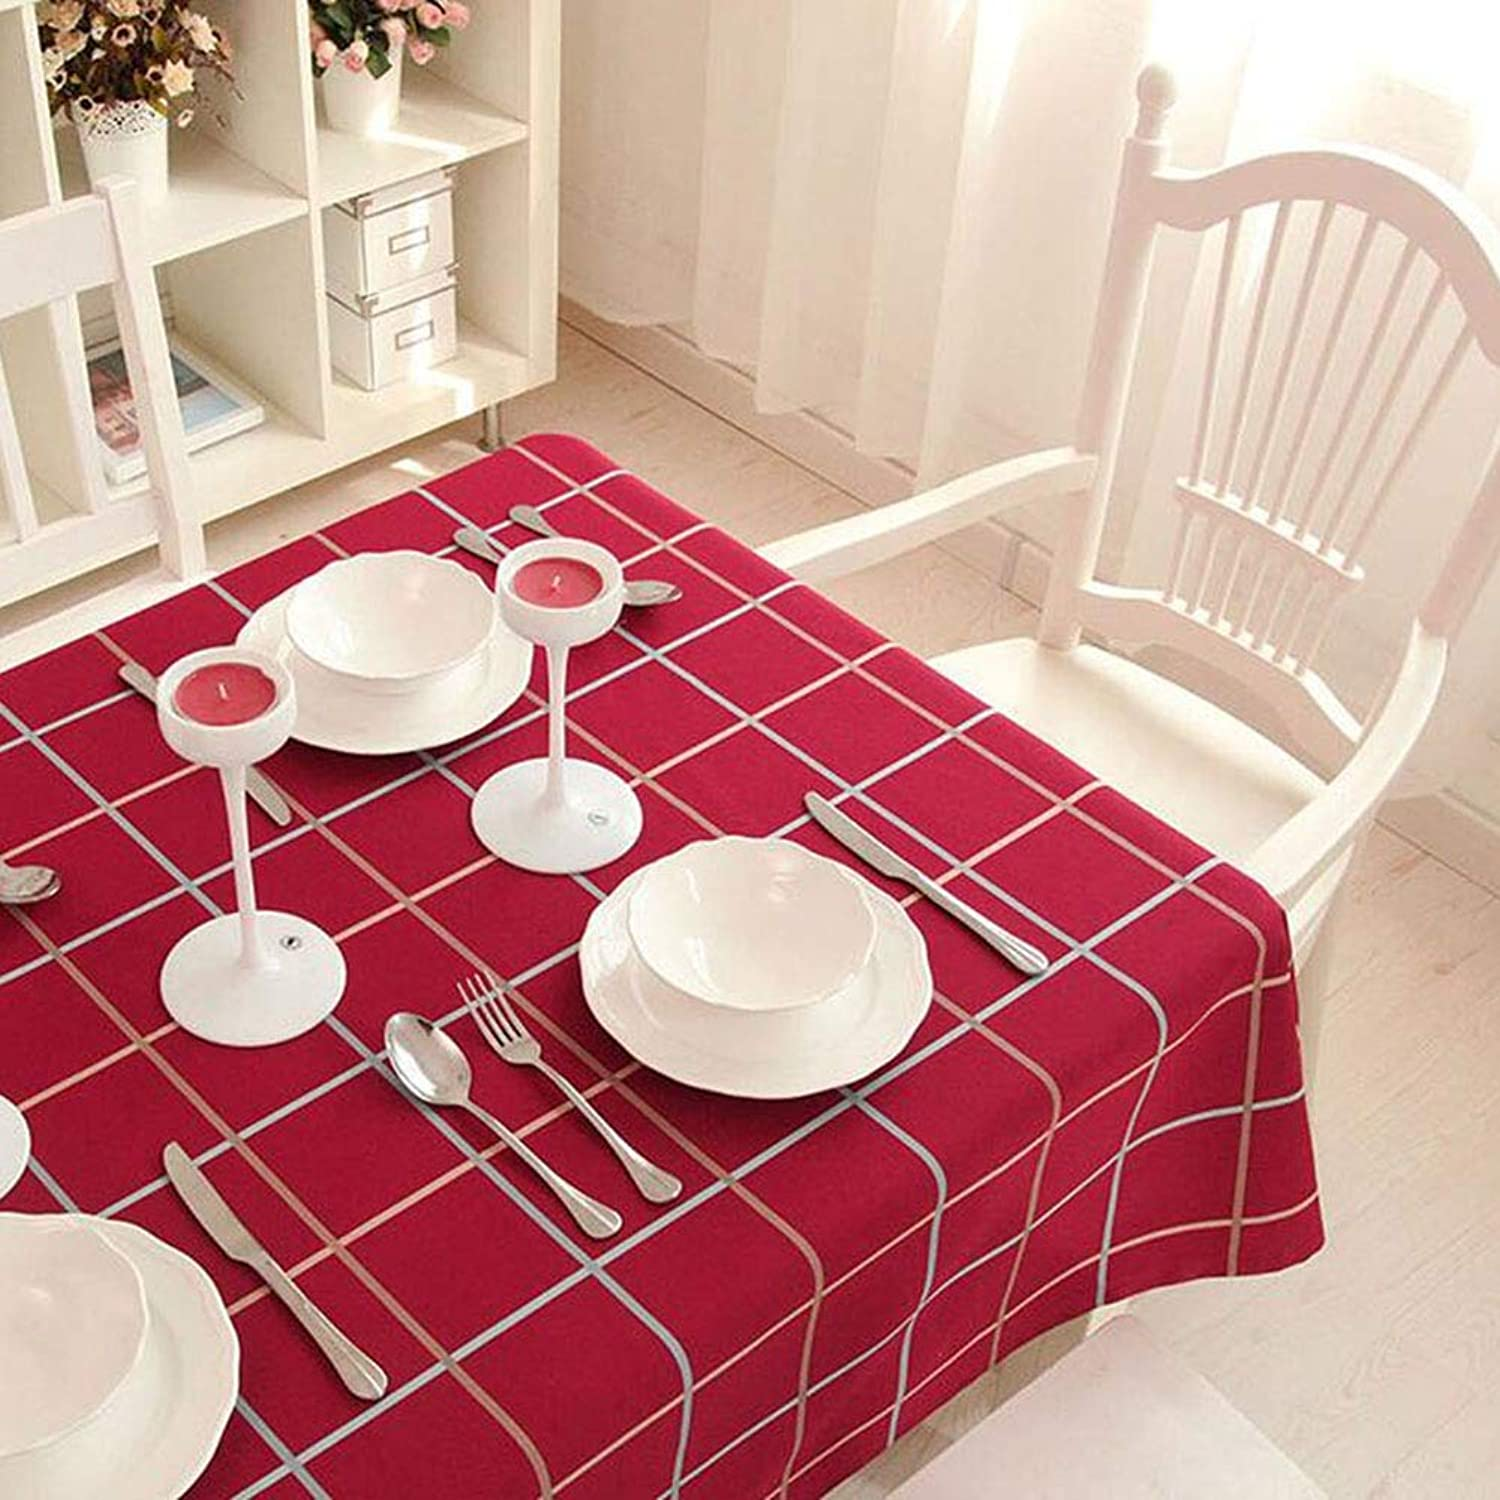 QY Tablecloth Tablecloth Cotton and Linen Dining Table Linen Slipcover Household Kitchen Indoor Outdoor Party Holiday Use color Square Format (color   pink, Size   90  140cm)